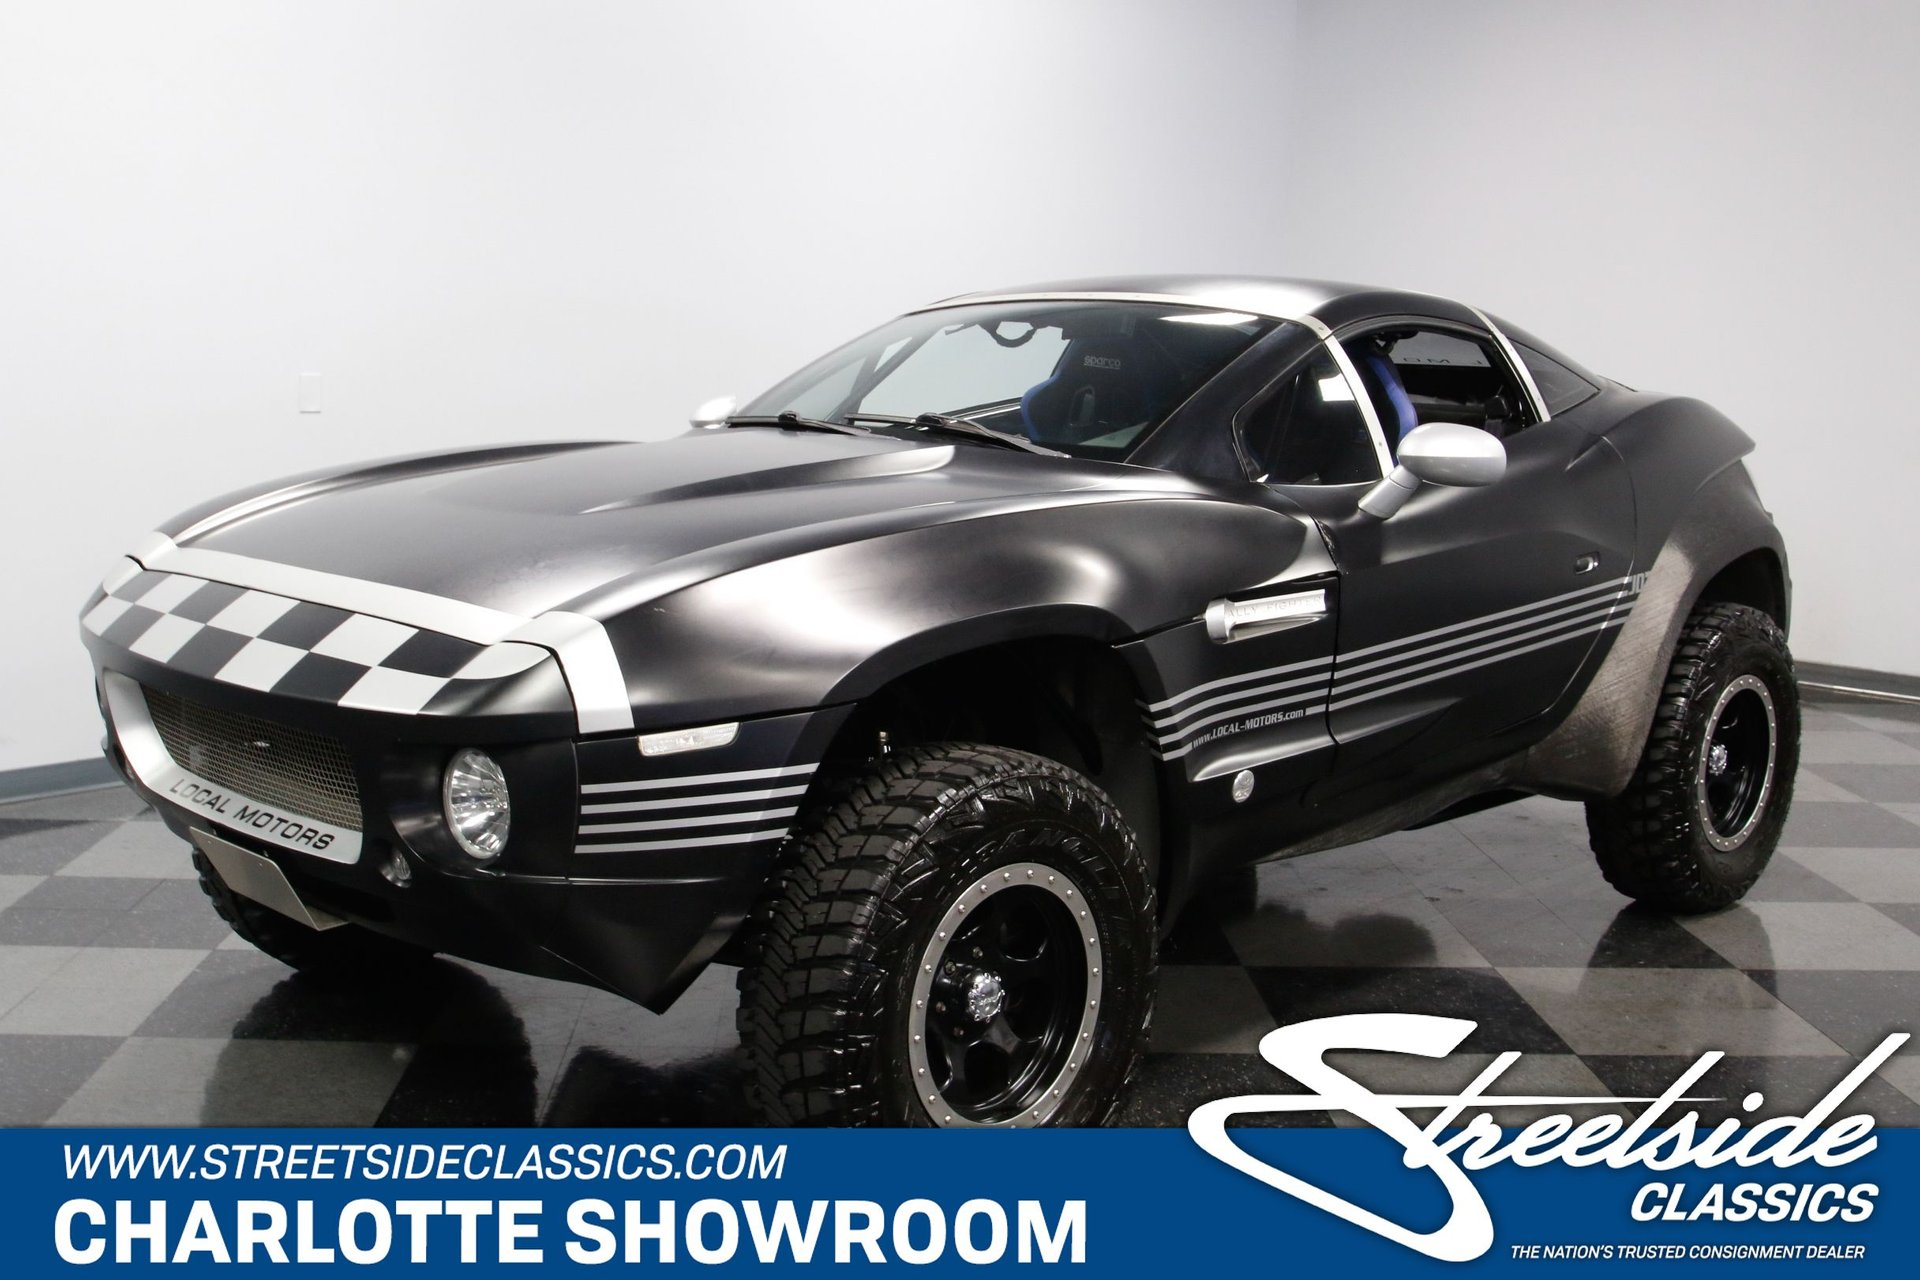 2011 local motors rally fighter